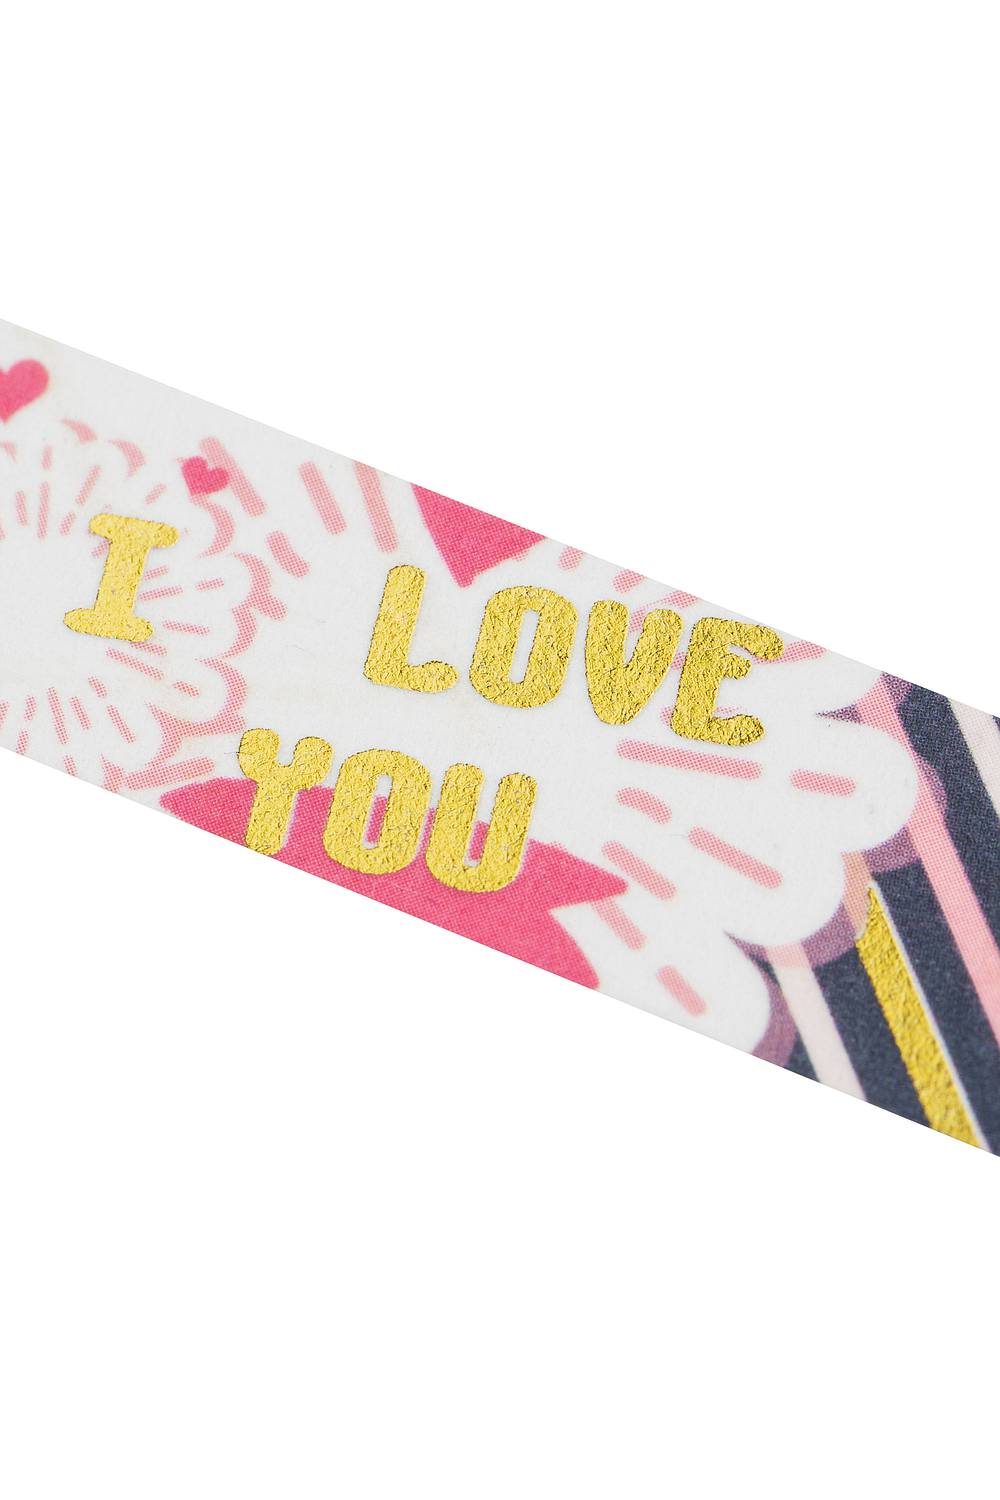 Washi Tape - I love you